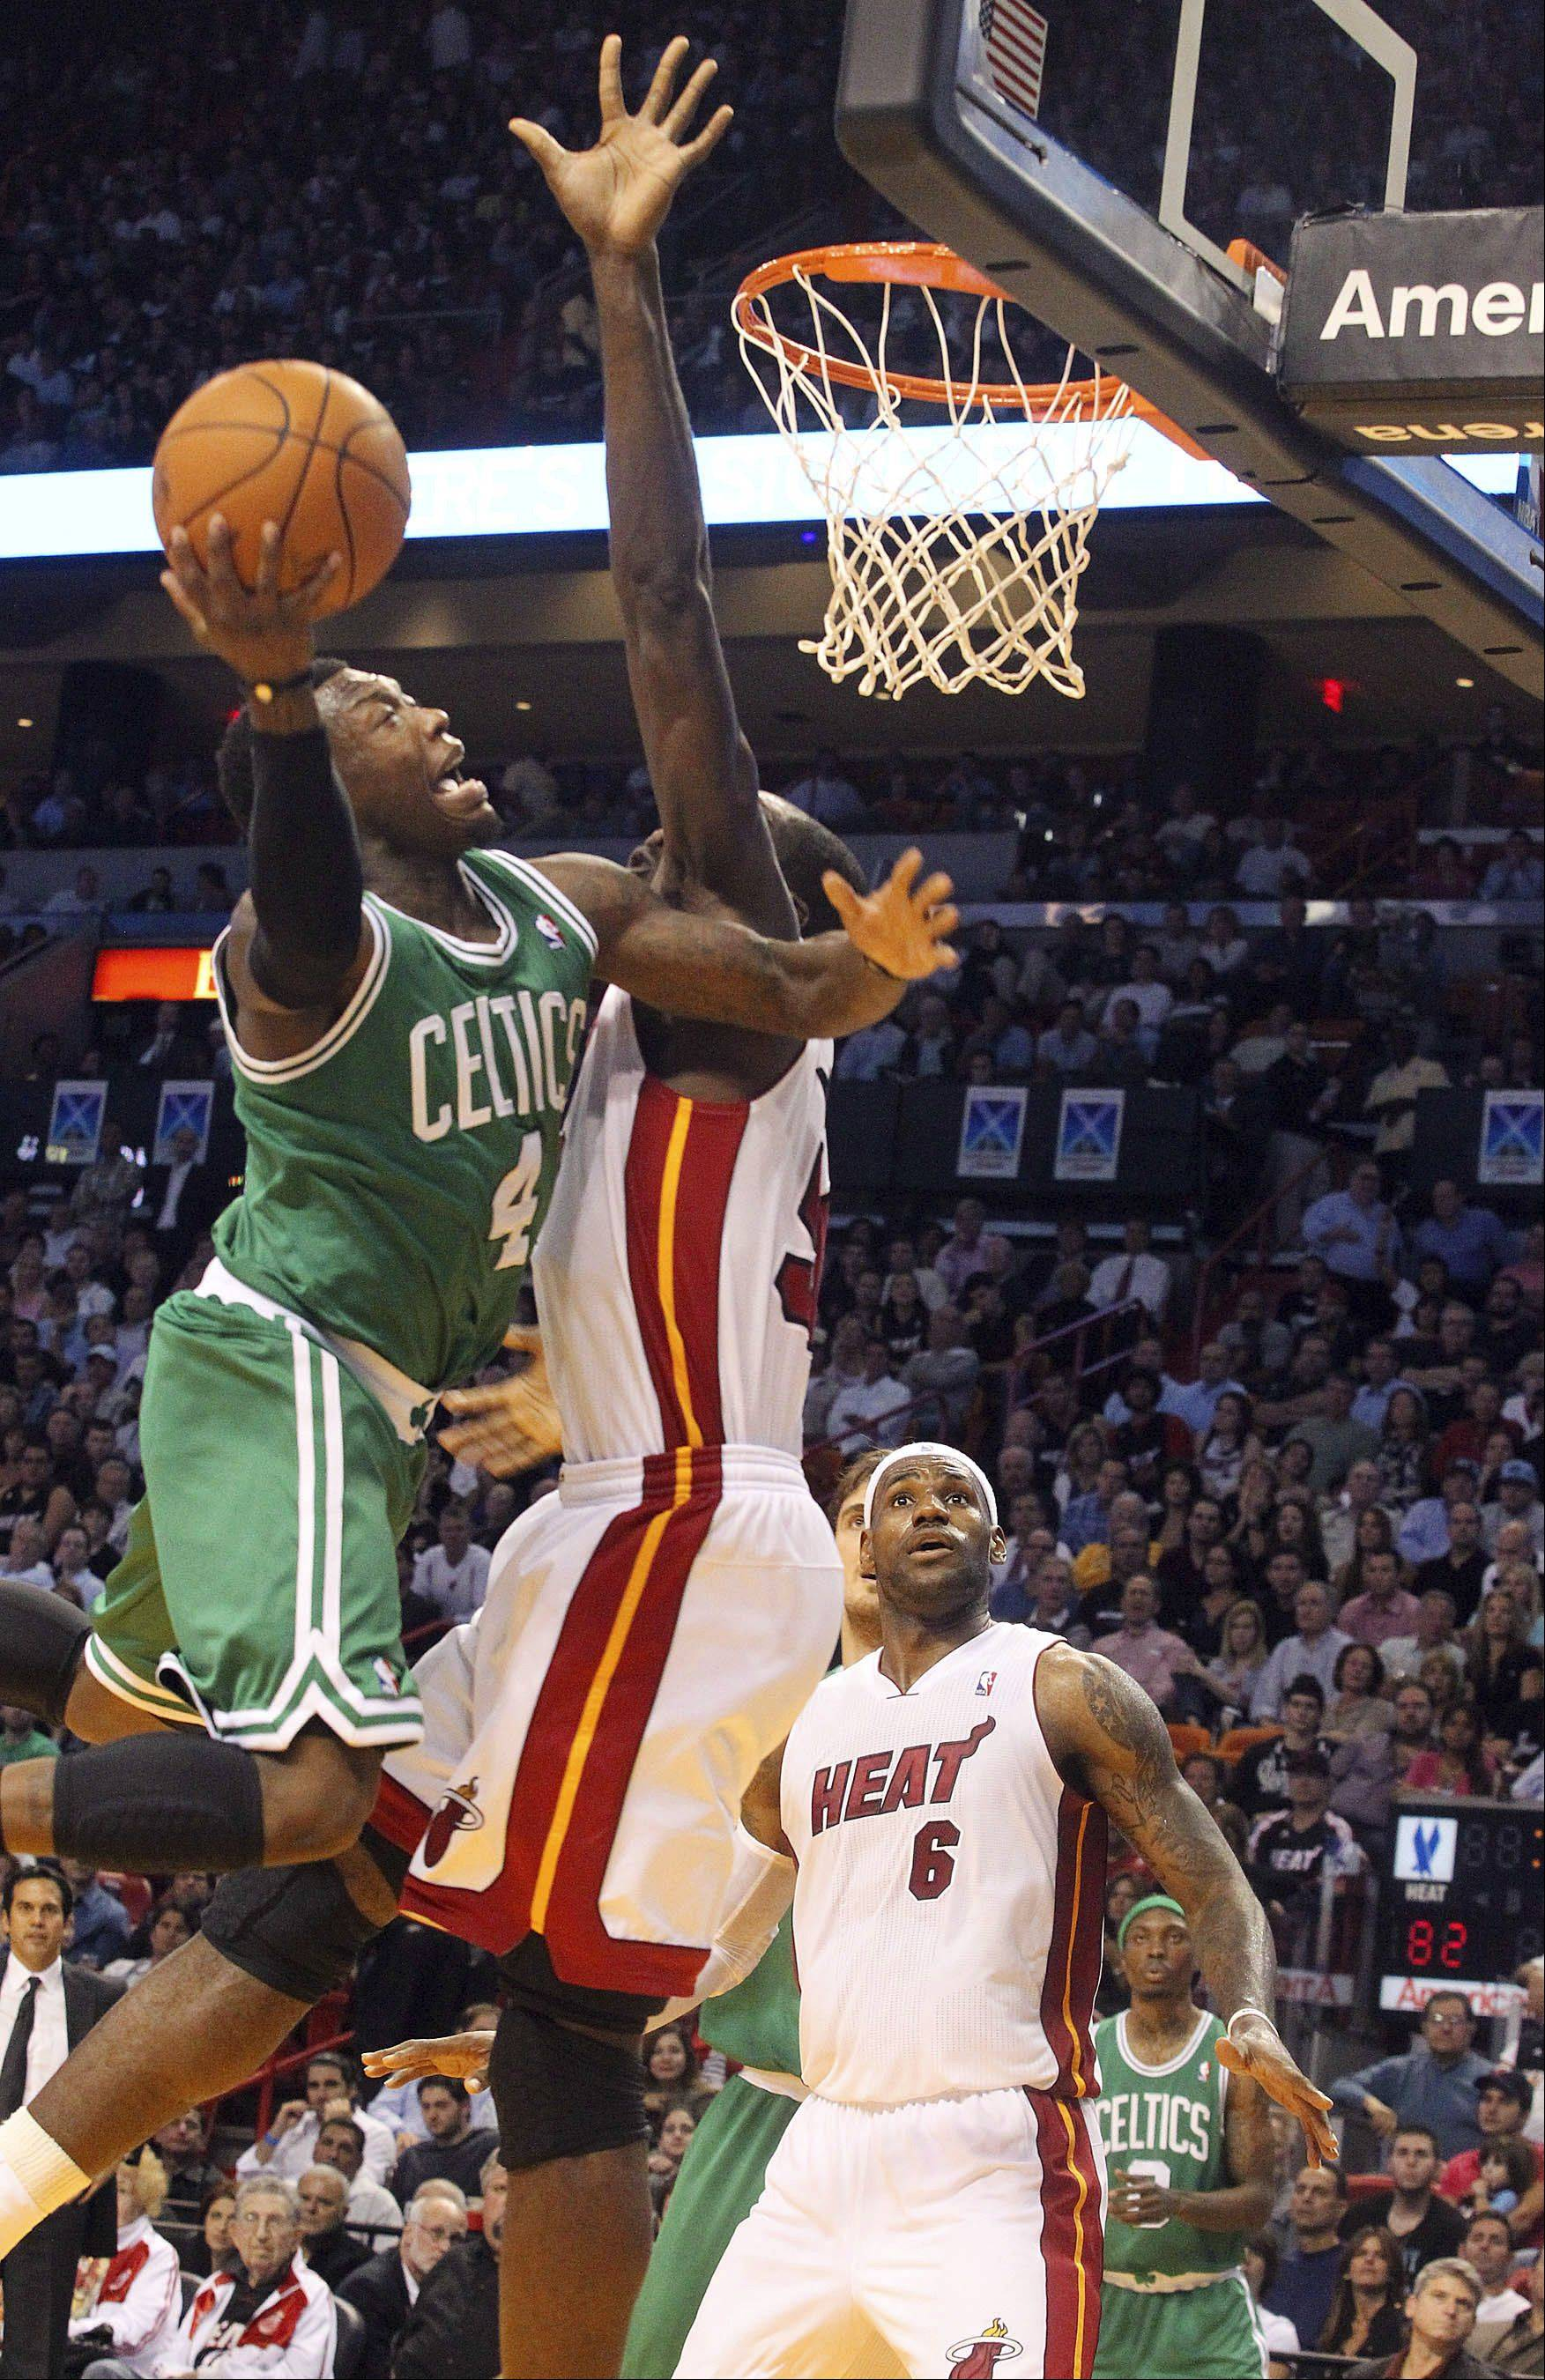 Boston Celtics' Nate Robinson goes to the basket against Miami Heat's Dwyane Wade during the third quarter of an NBA basketball game Thursday, Nov. 11, 2010, in Miami.